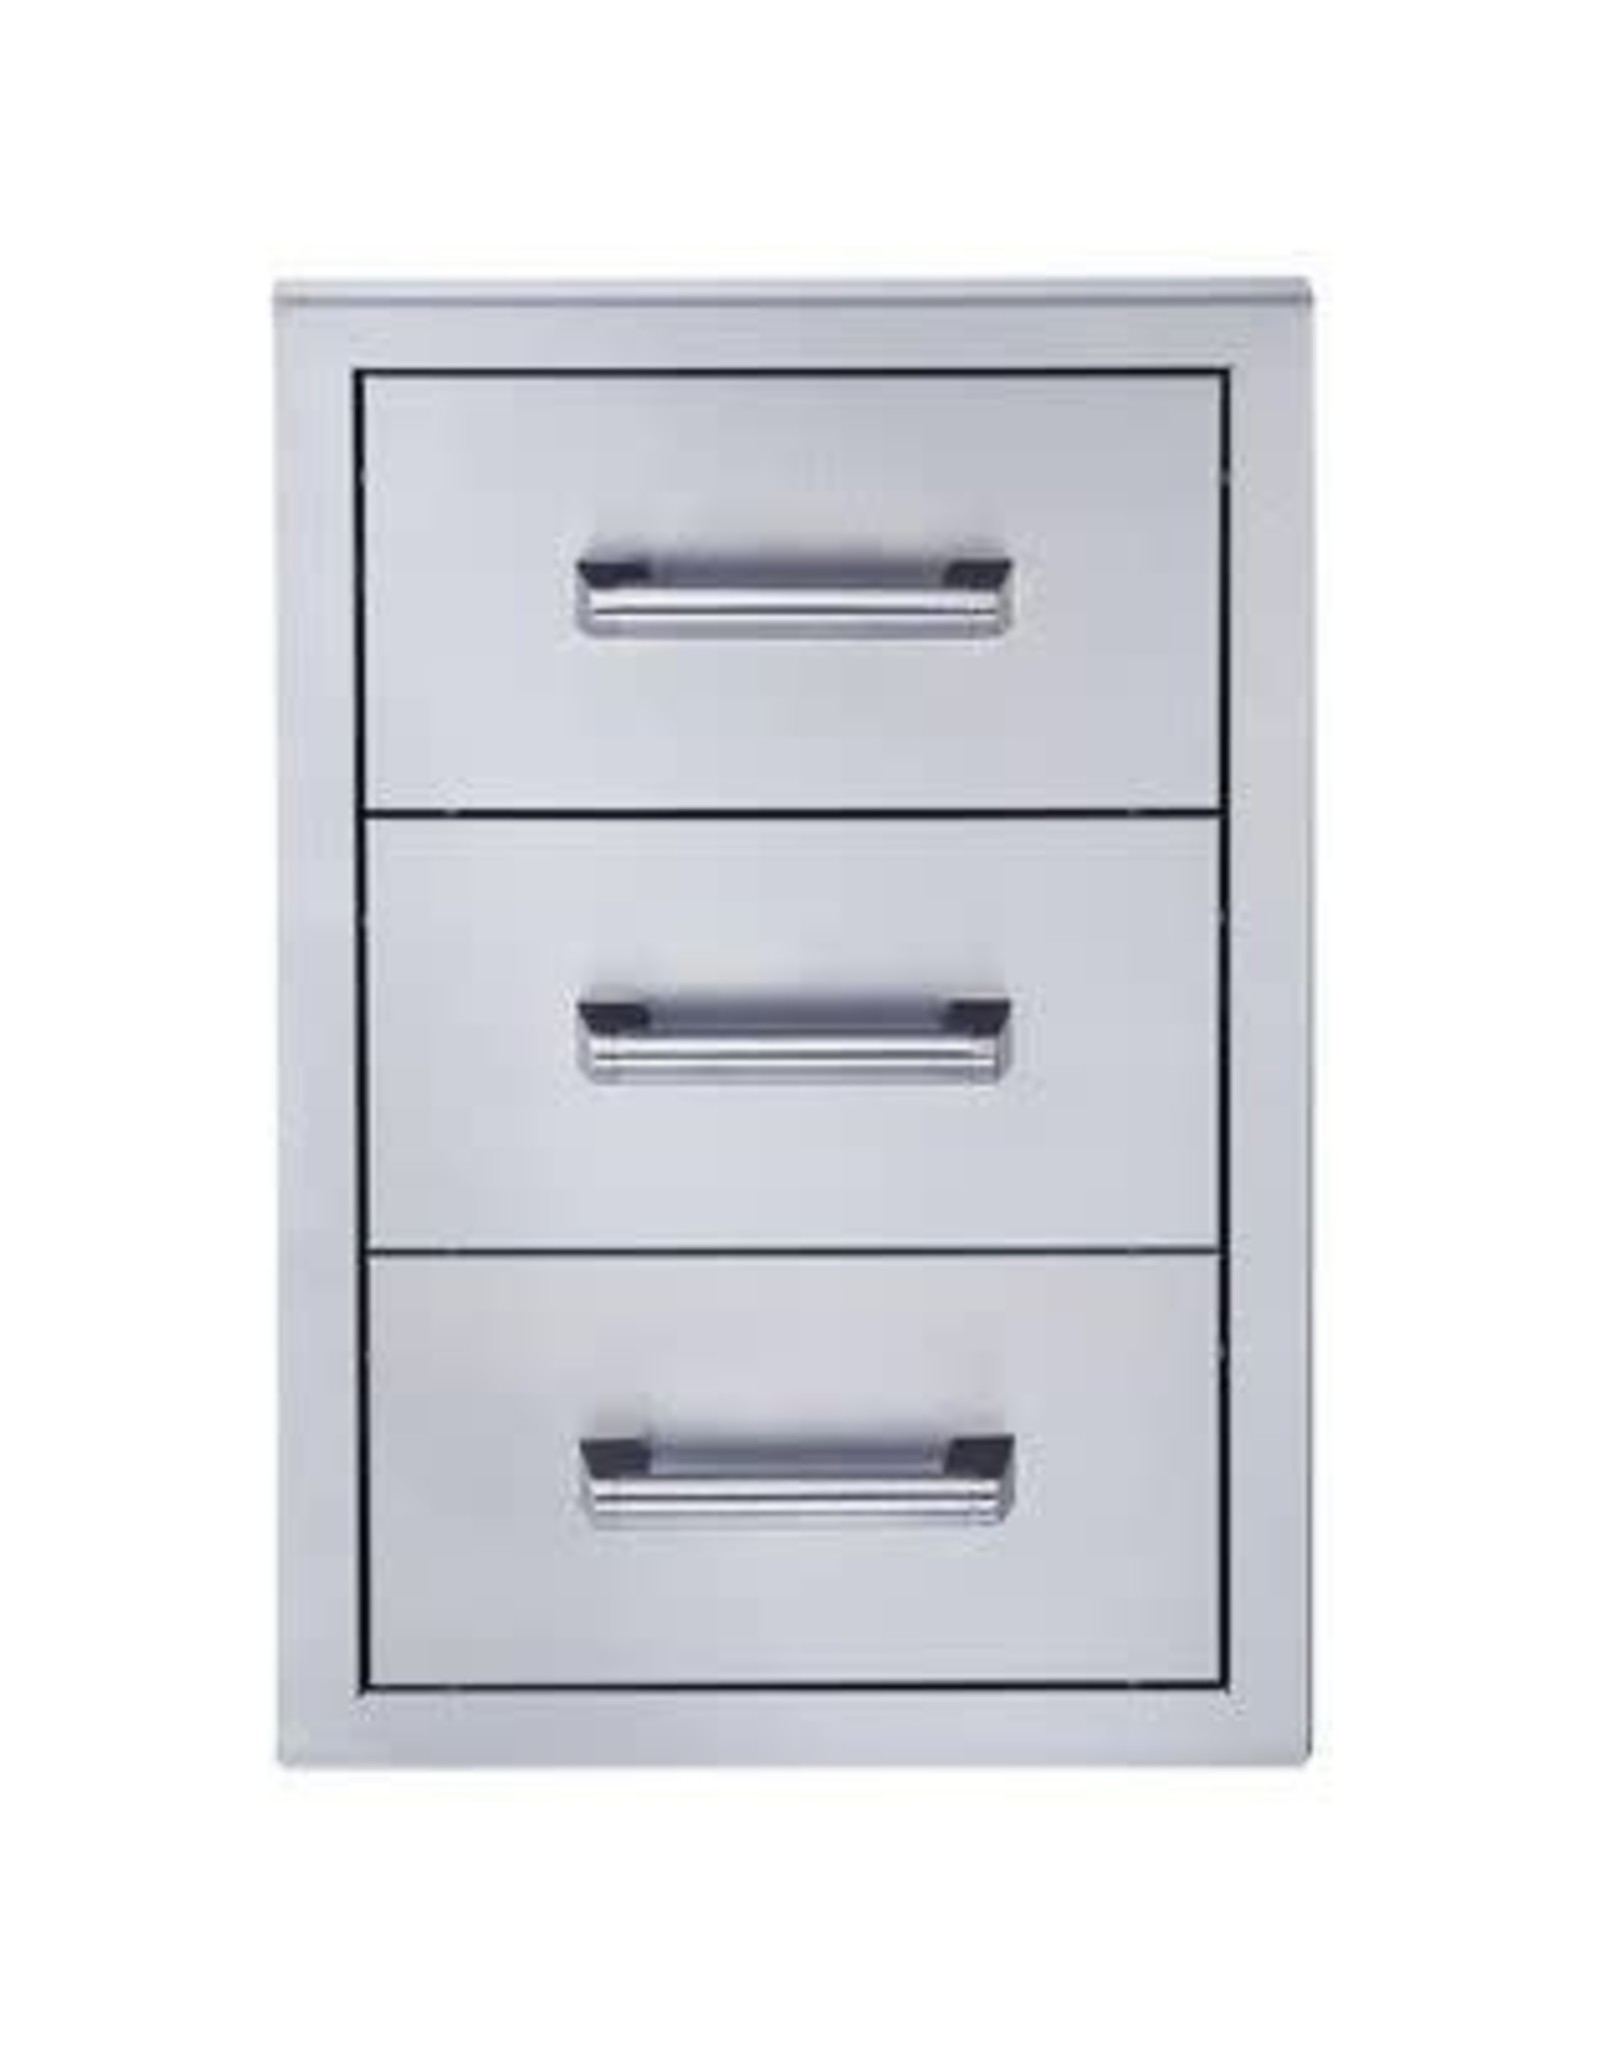 Broilmaster Broilmaster Triple Drawer for Stainless Steel Gas Grills - BSAW1826T